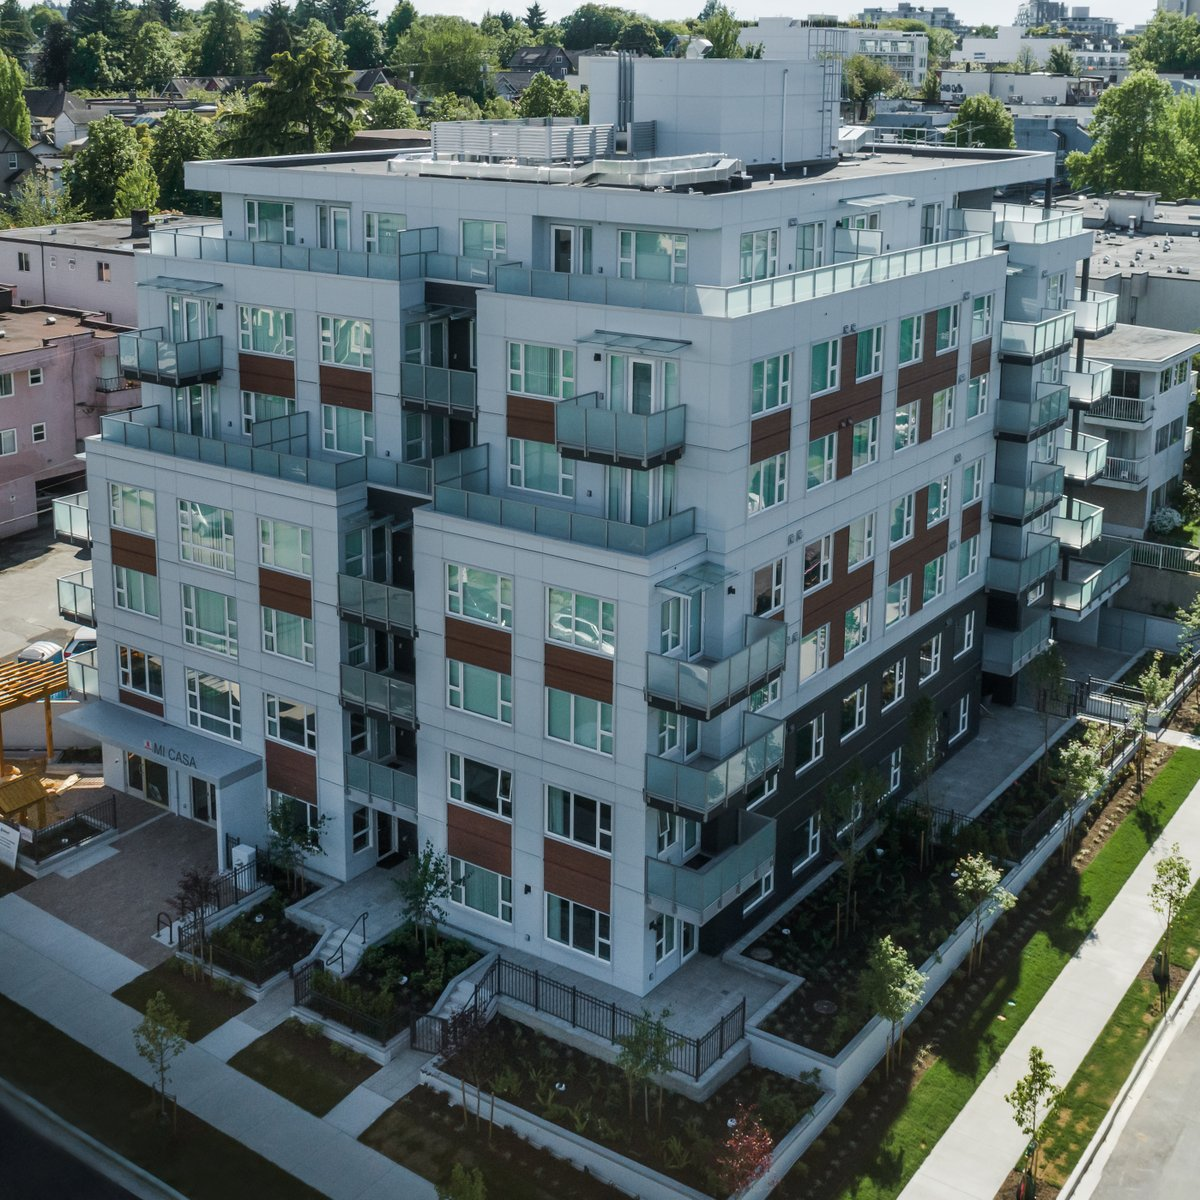 test Twitter Media - Final Photos of our Mi Casa project on St. Catherines Street in Vancouver. For more info please visit our website at: https://t.co/4miVCDqfIQ #RedDoorHousingSociety #CPADevelopments https://t.co/OgWHFJPaxr